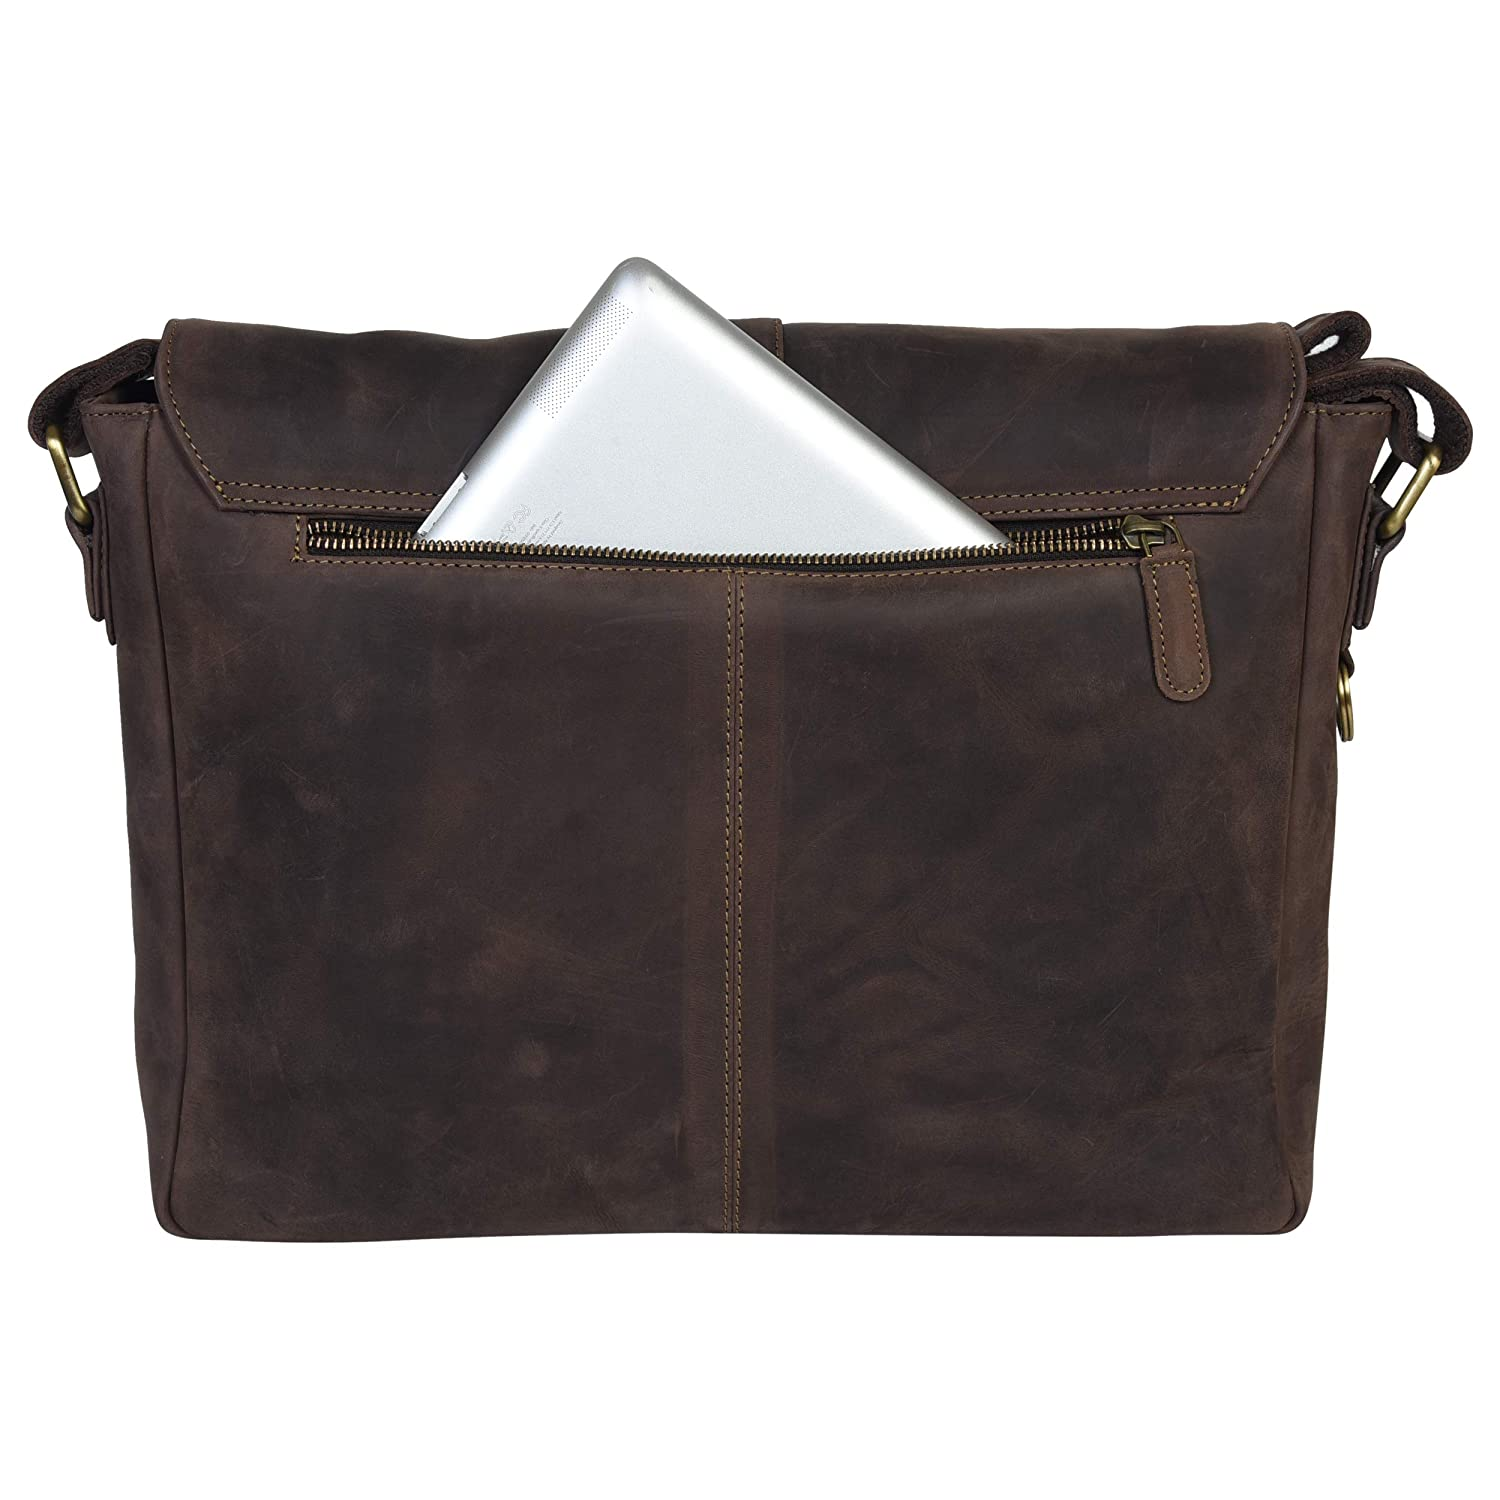 14 inch Laptop Bag for College Work Office by LEVOGUE Genuine Leather Messenger Bag for Men and Women